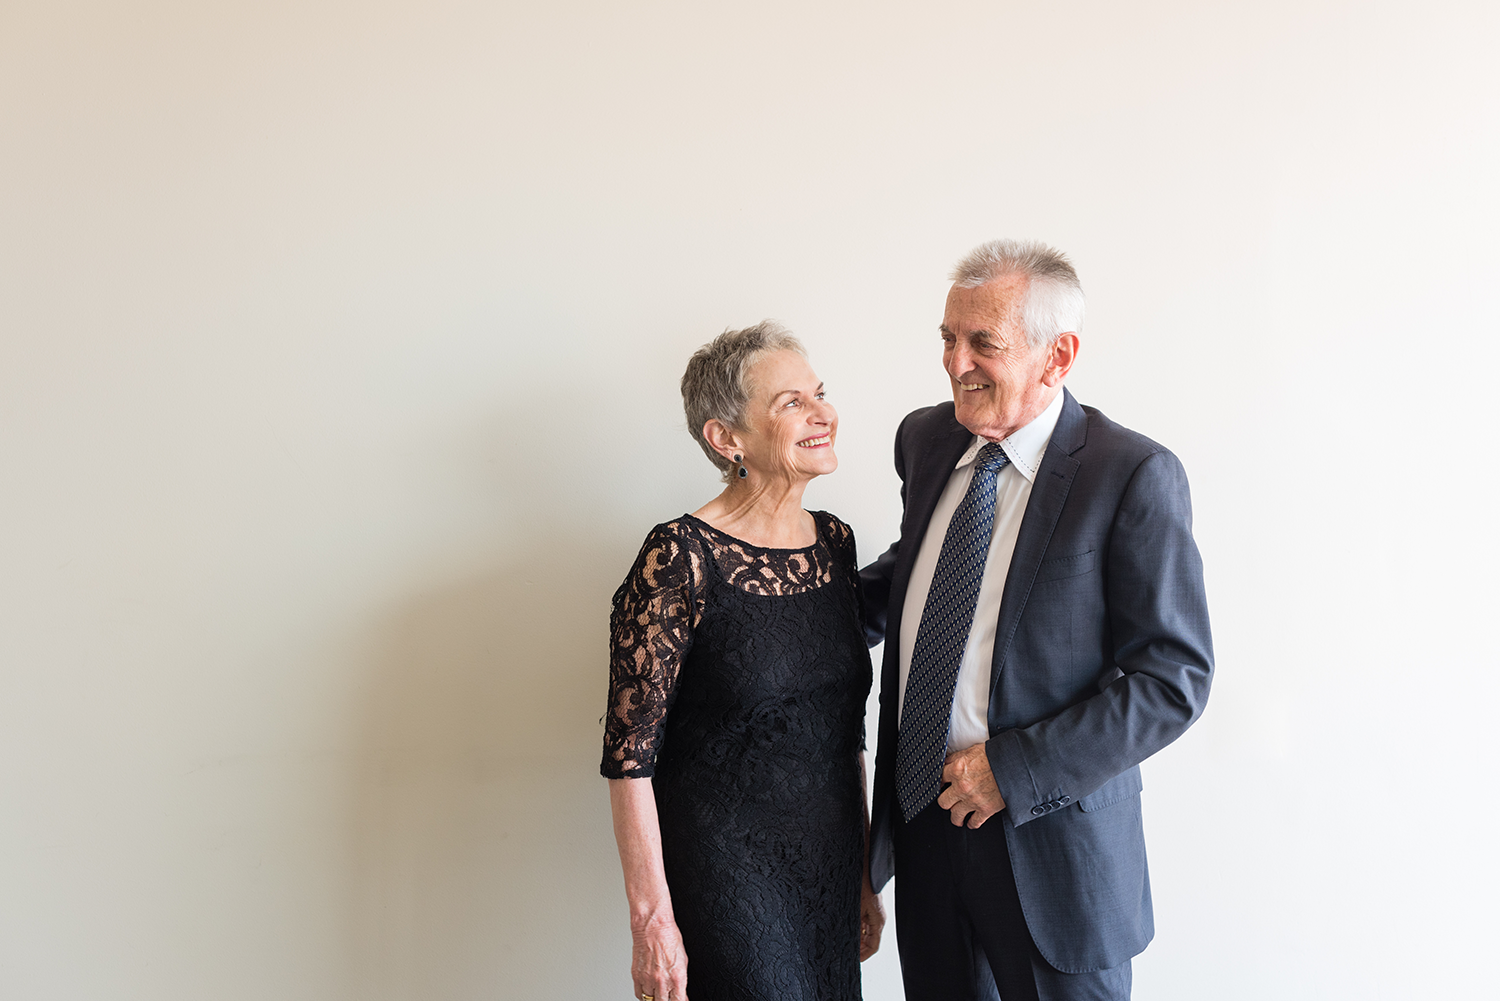 Romance-in-Retirement-When-Seniors-Remarry